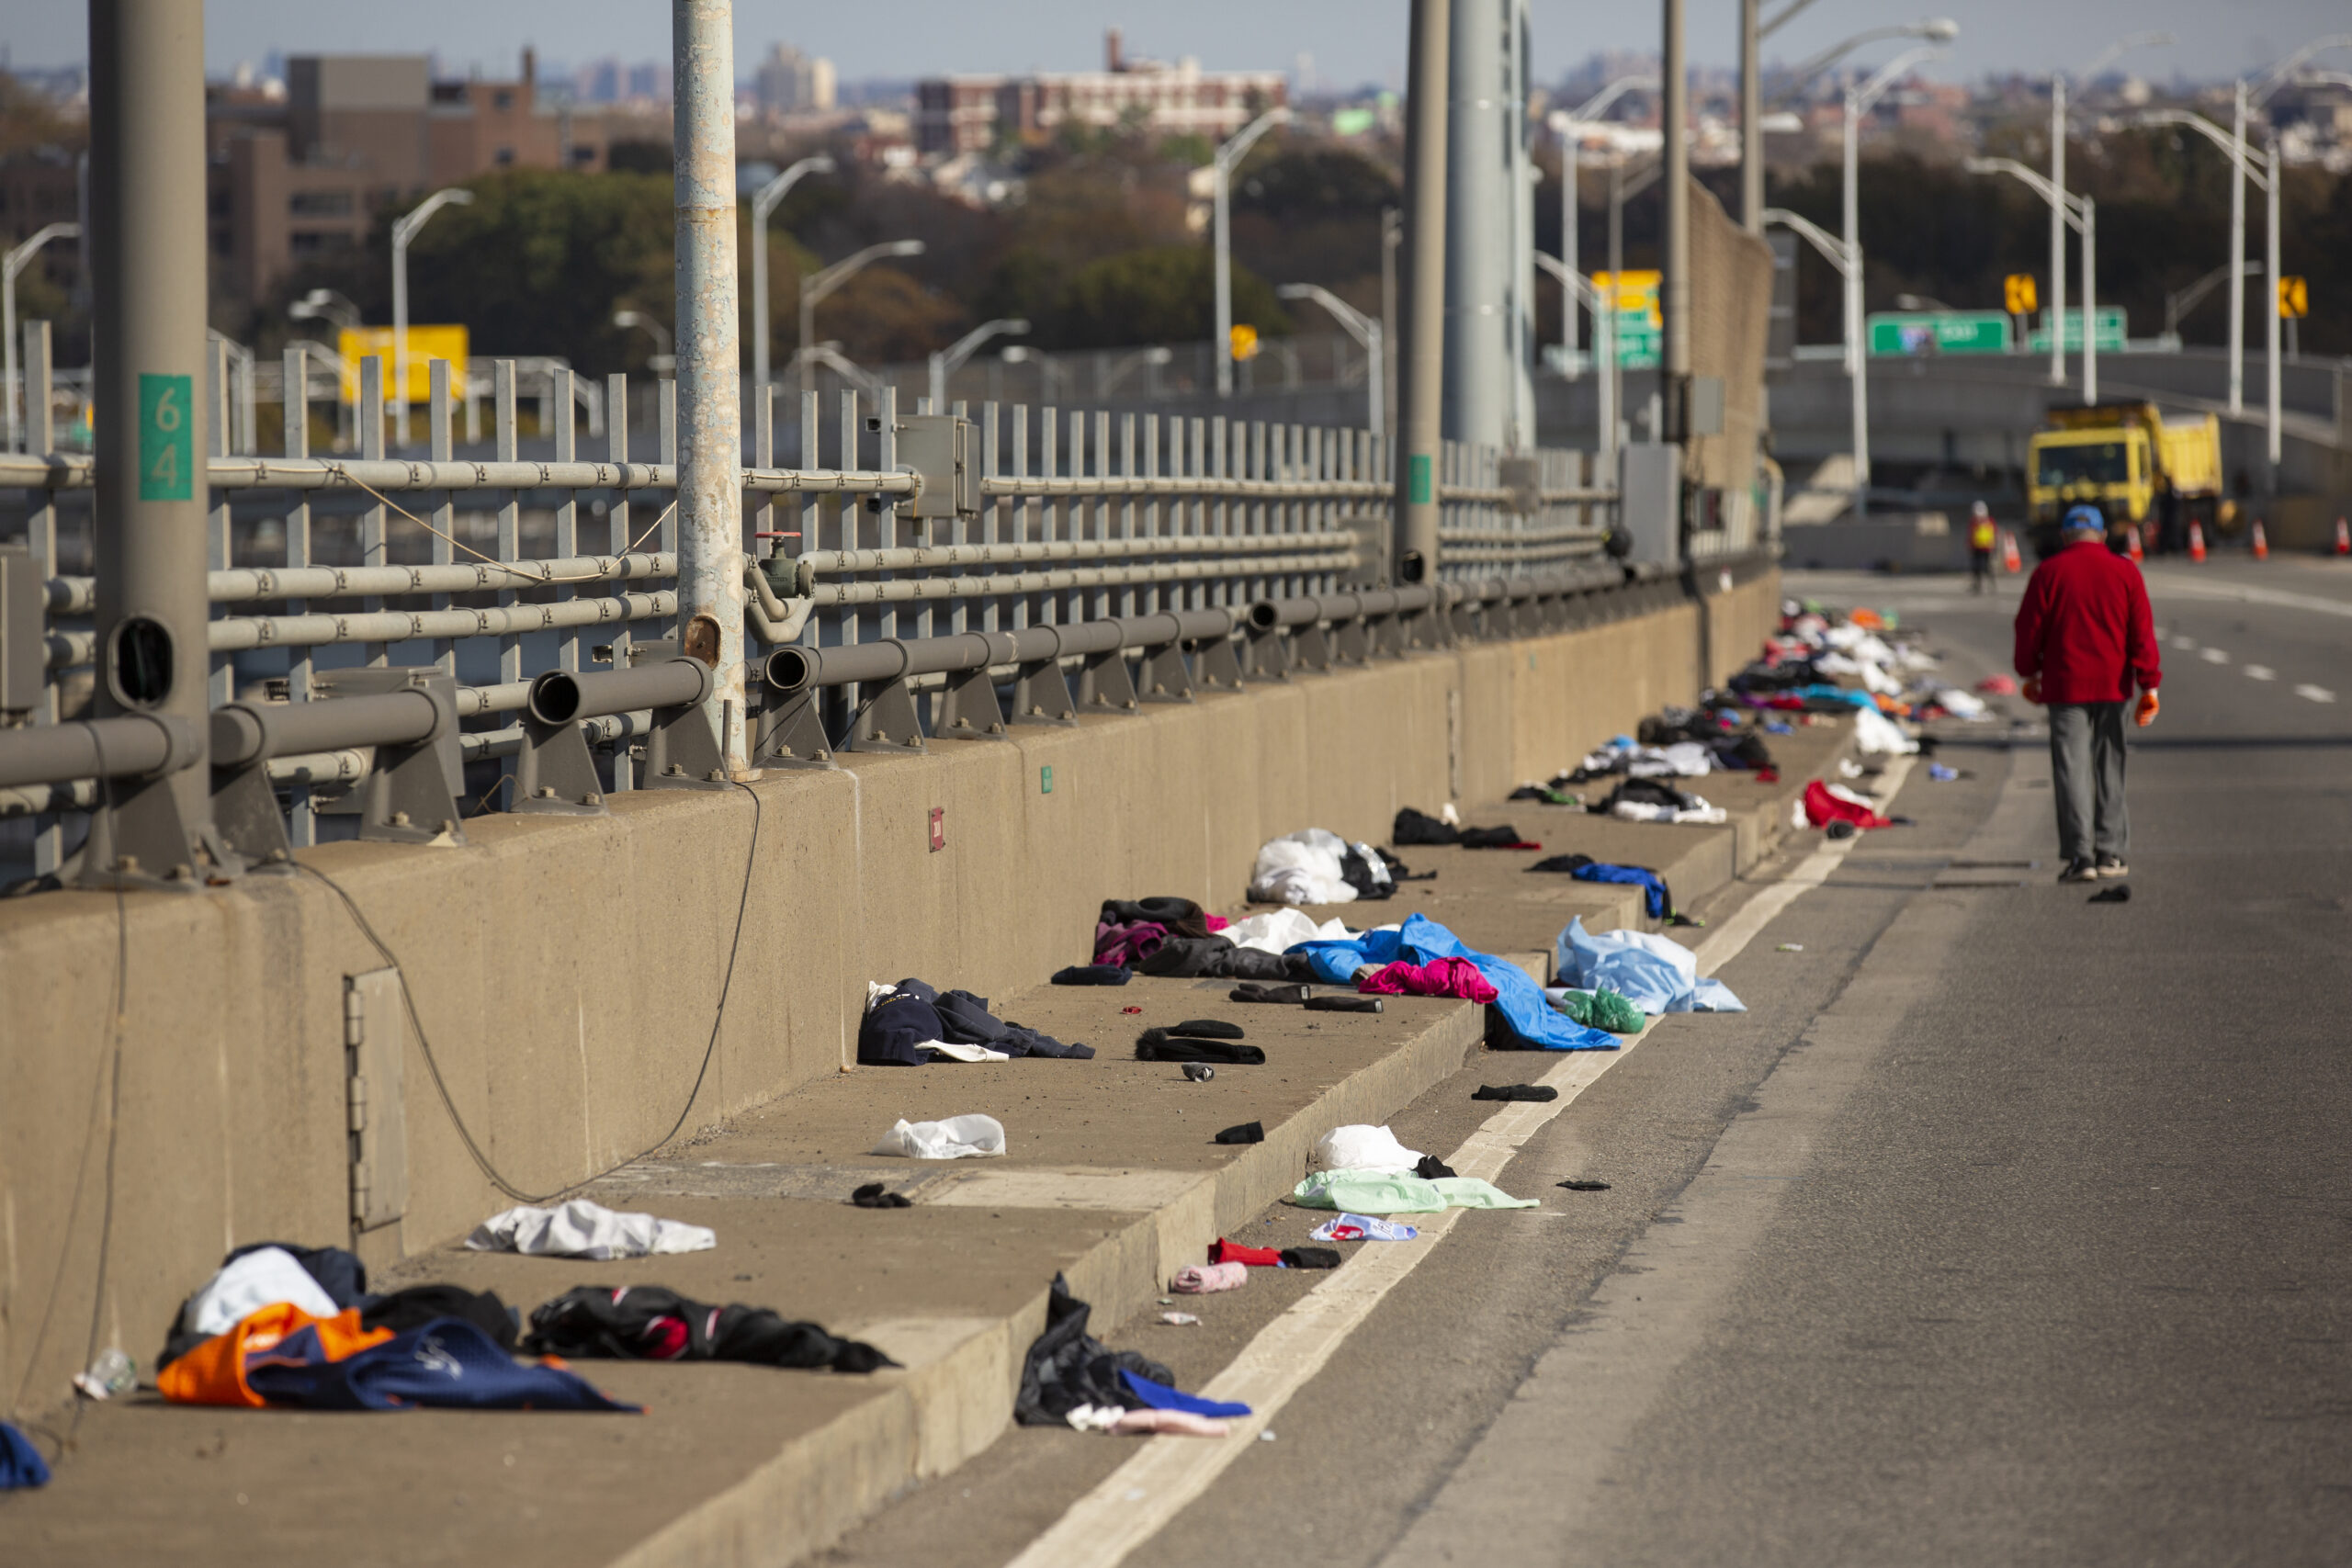 Another of Ben Norman's shots from the Verrazano Bridge showing abandoned running clothes